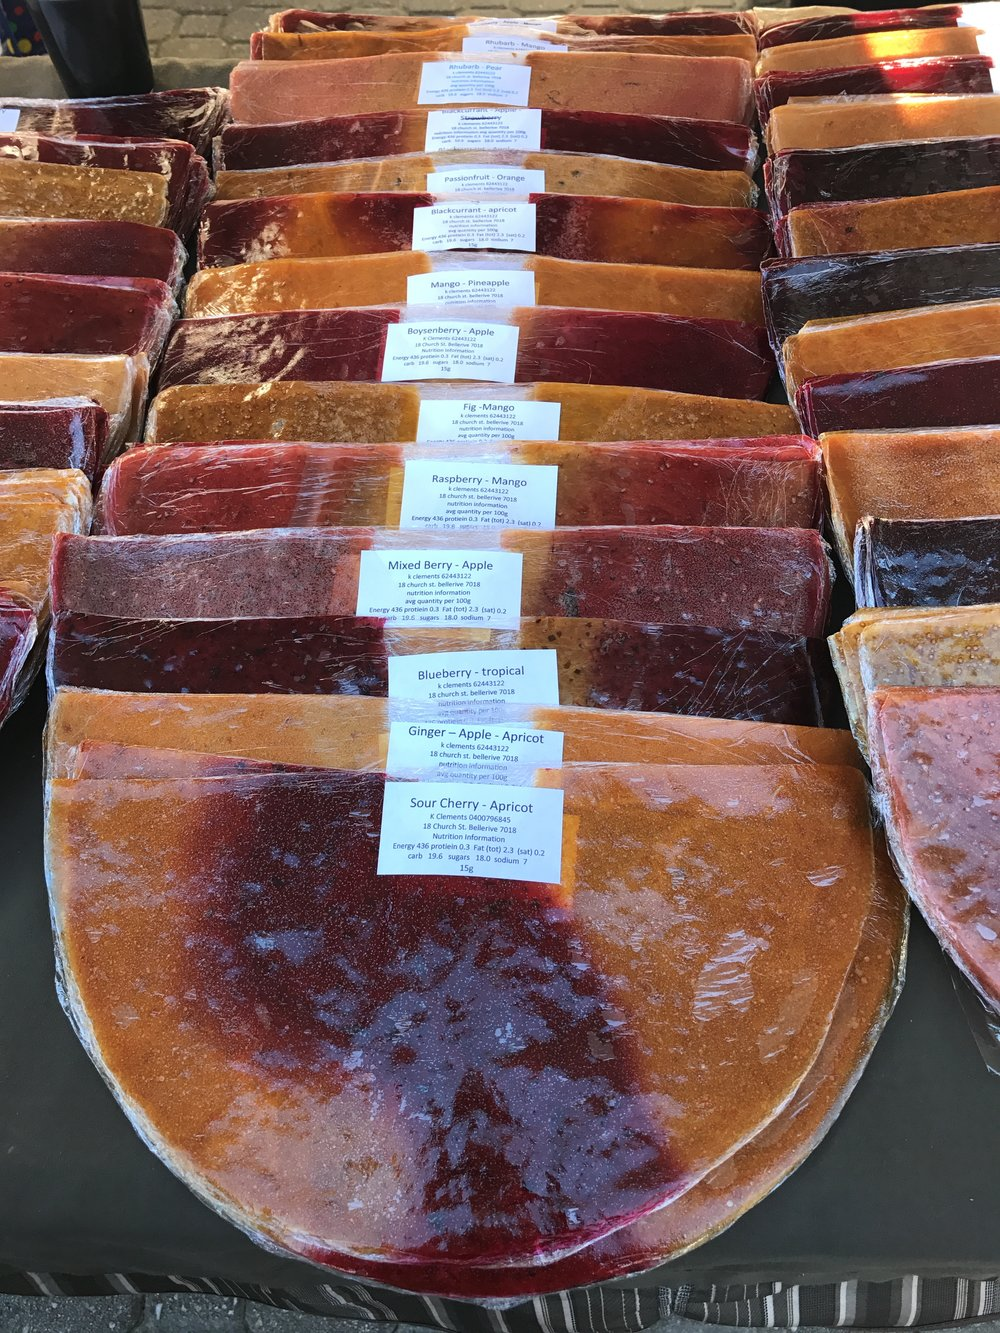 Humongous fruit leather